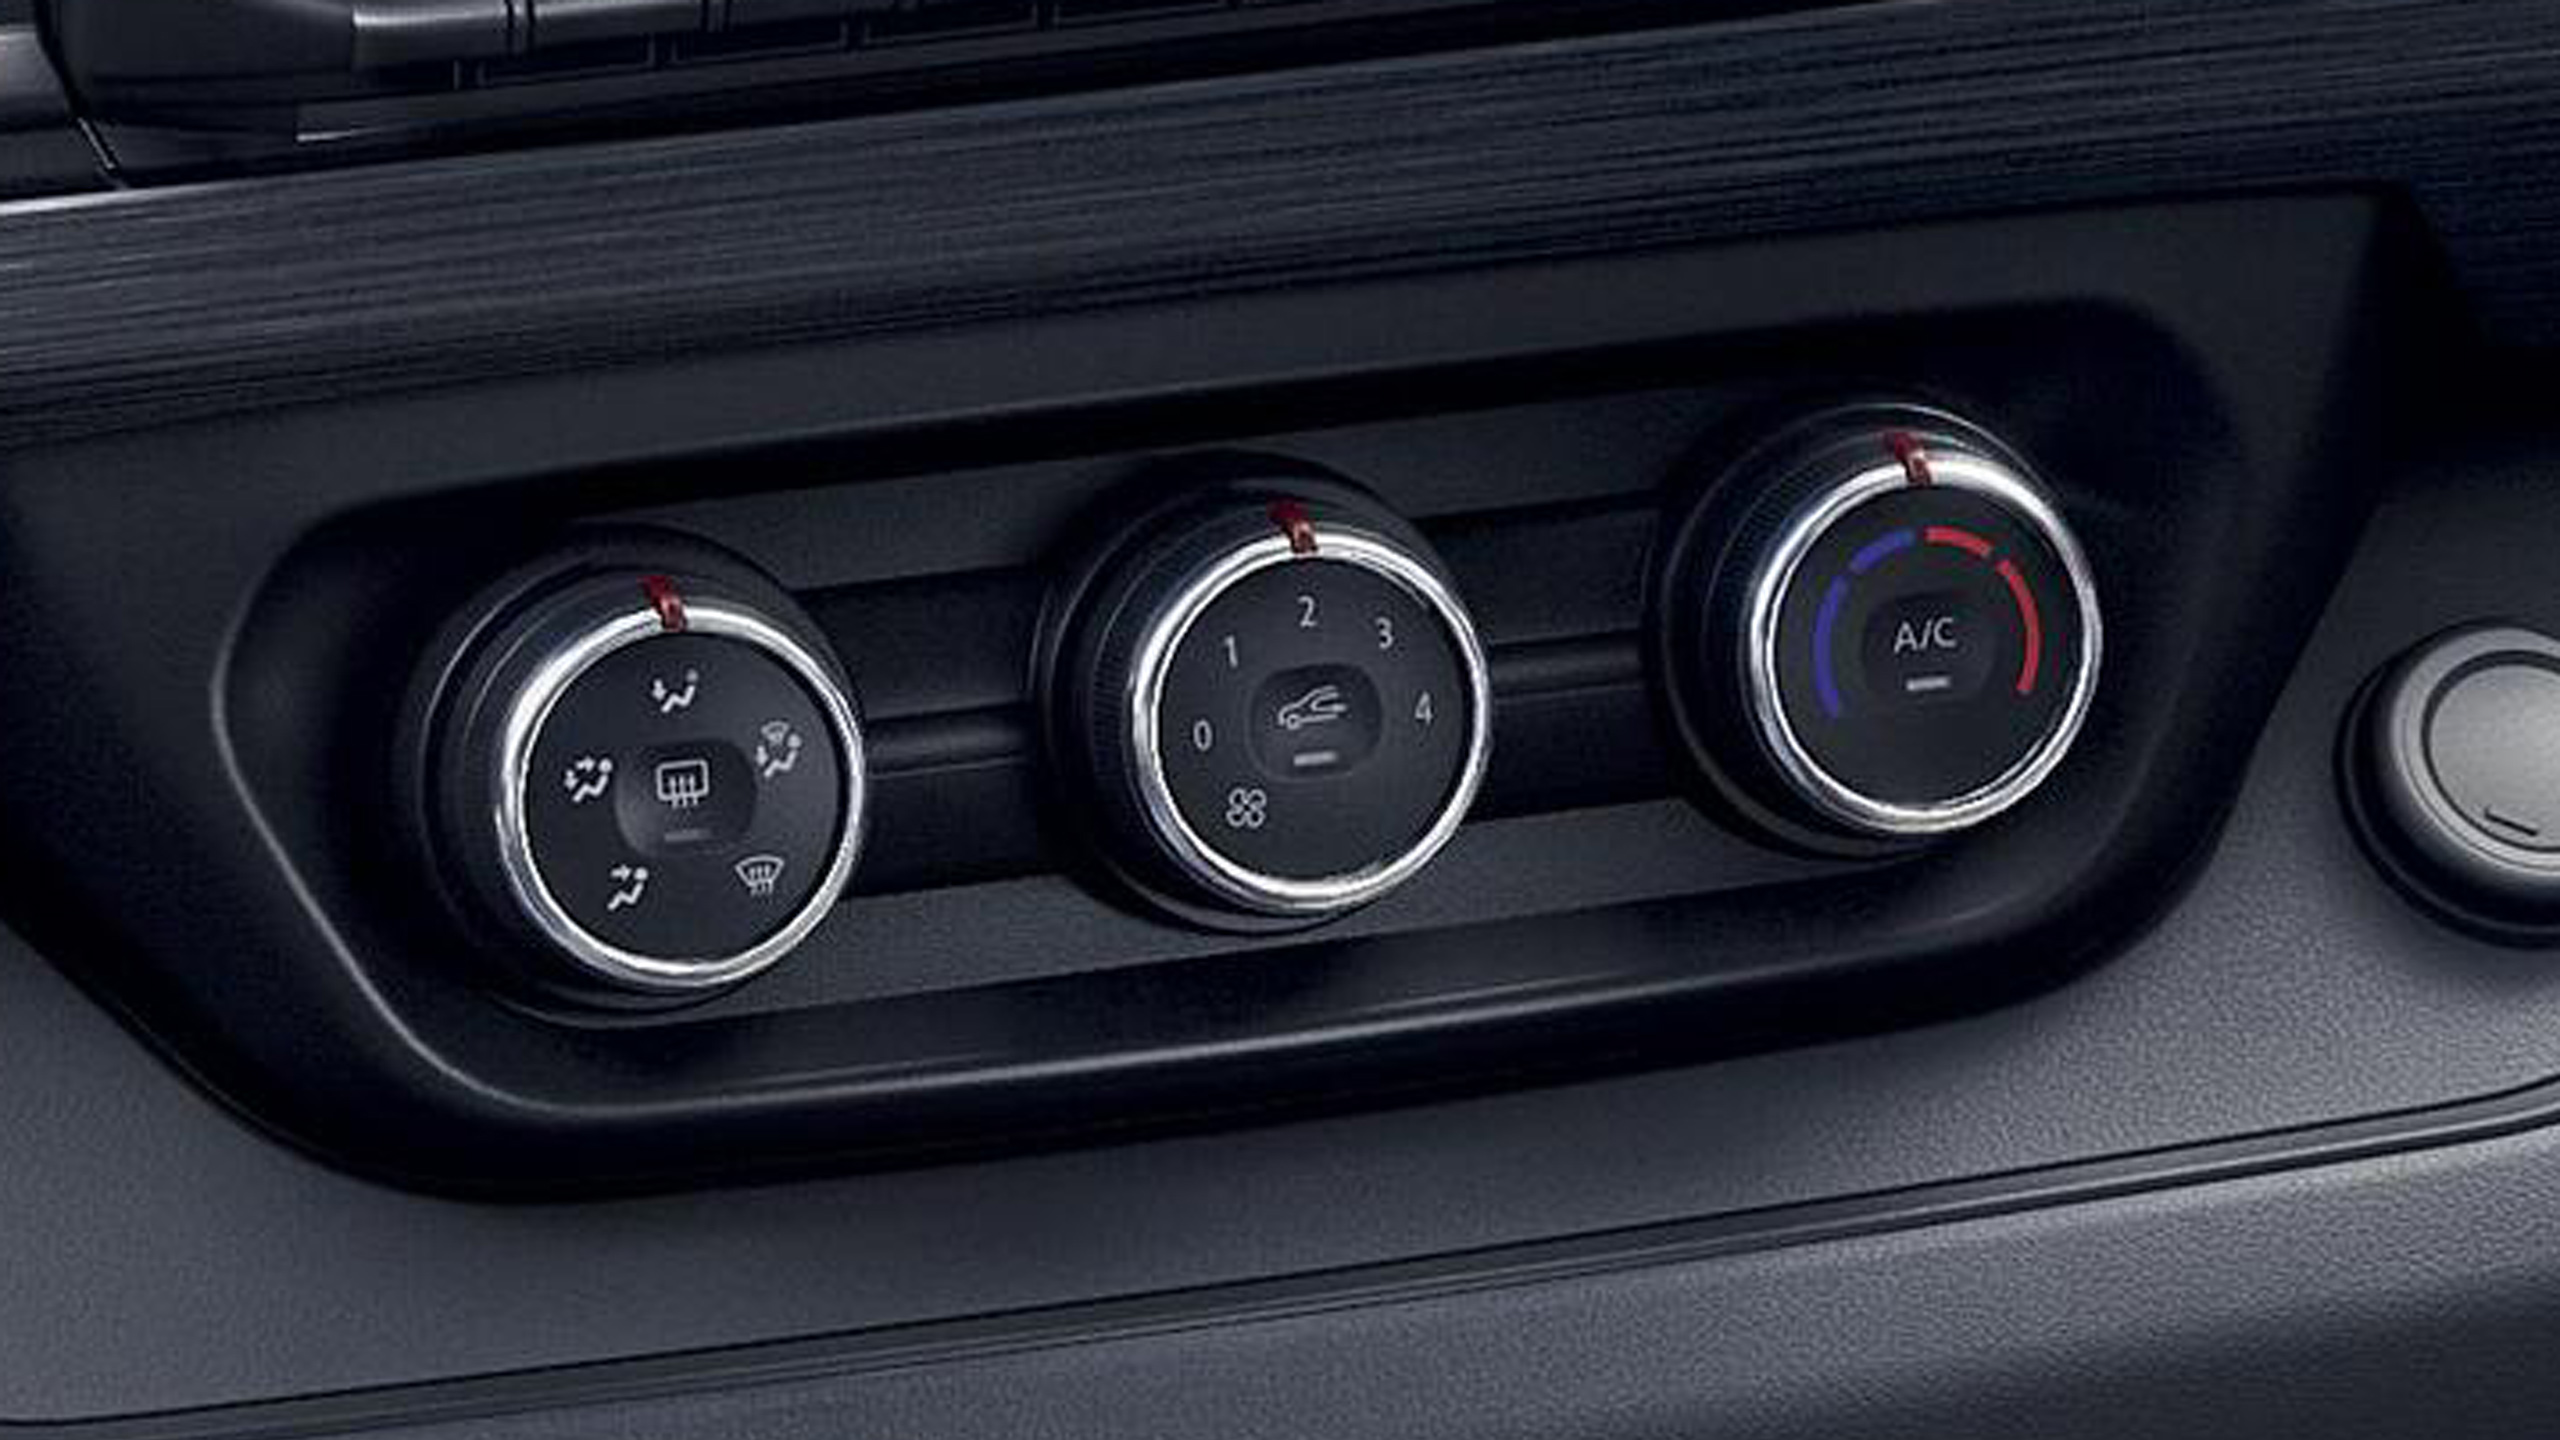 Manual air conditioning with pollen filter (front & rear) and additional heater